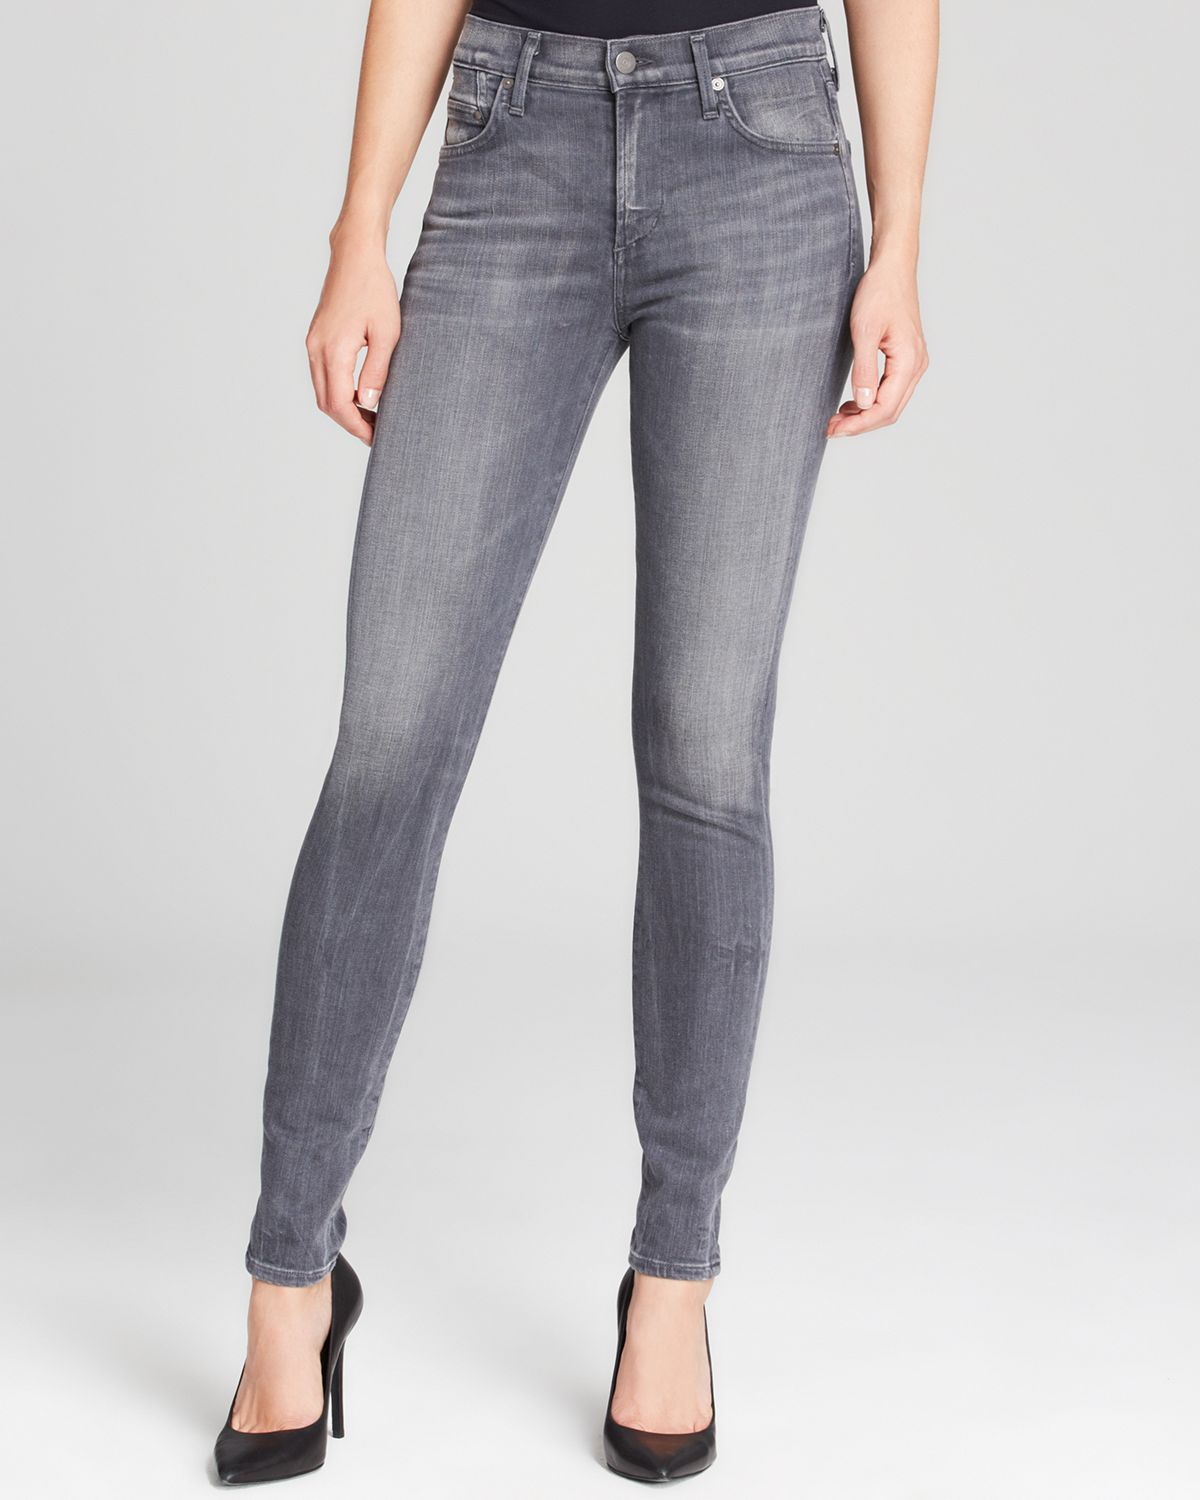 Lyst - Citizens of humanity Jeans - Rocket High Rise Skinny In Cinder in Gray